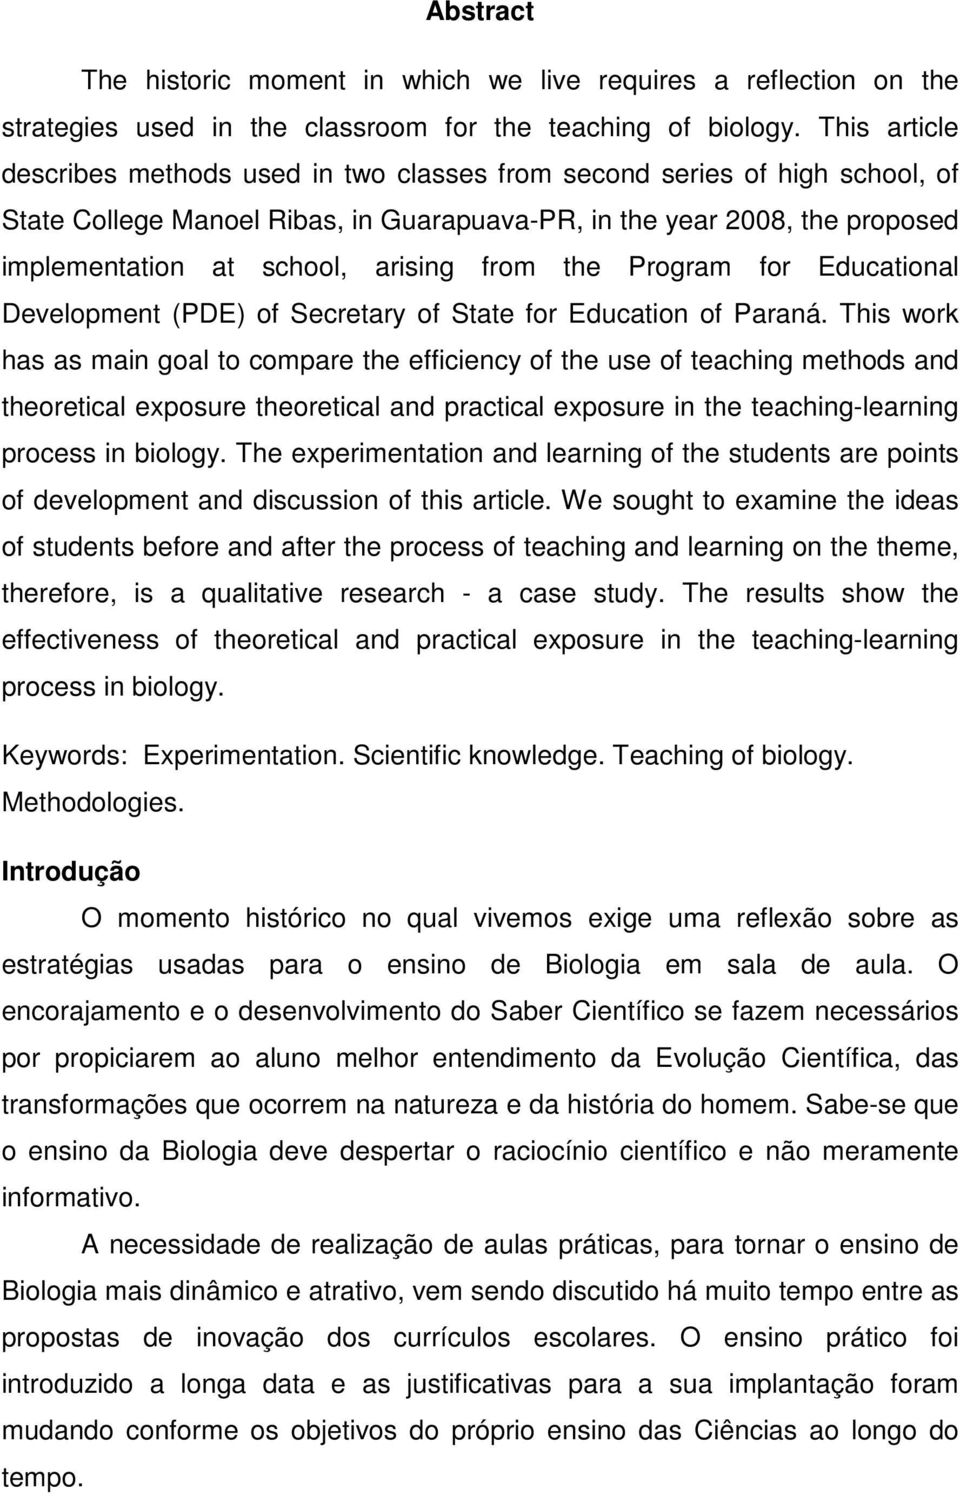 from the Program for Educational Development (PDE) of Secretary of State for Education of Paraná.